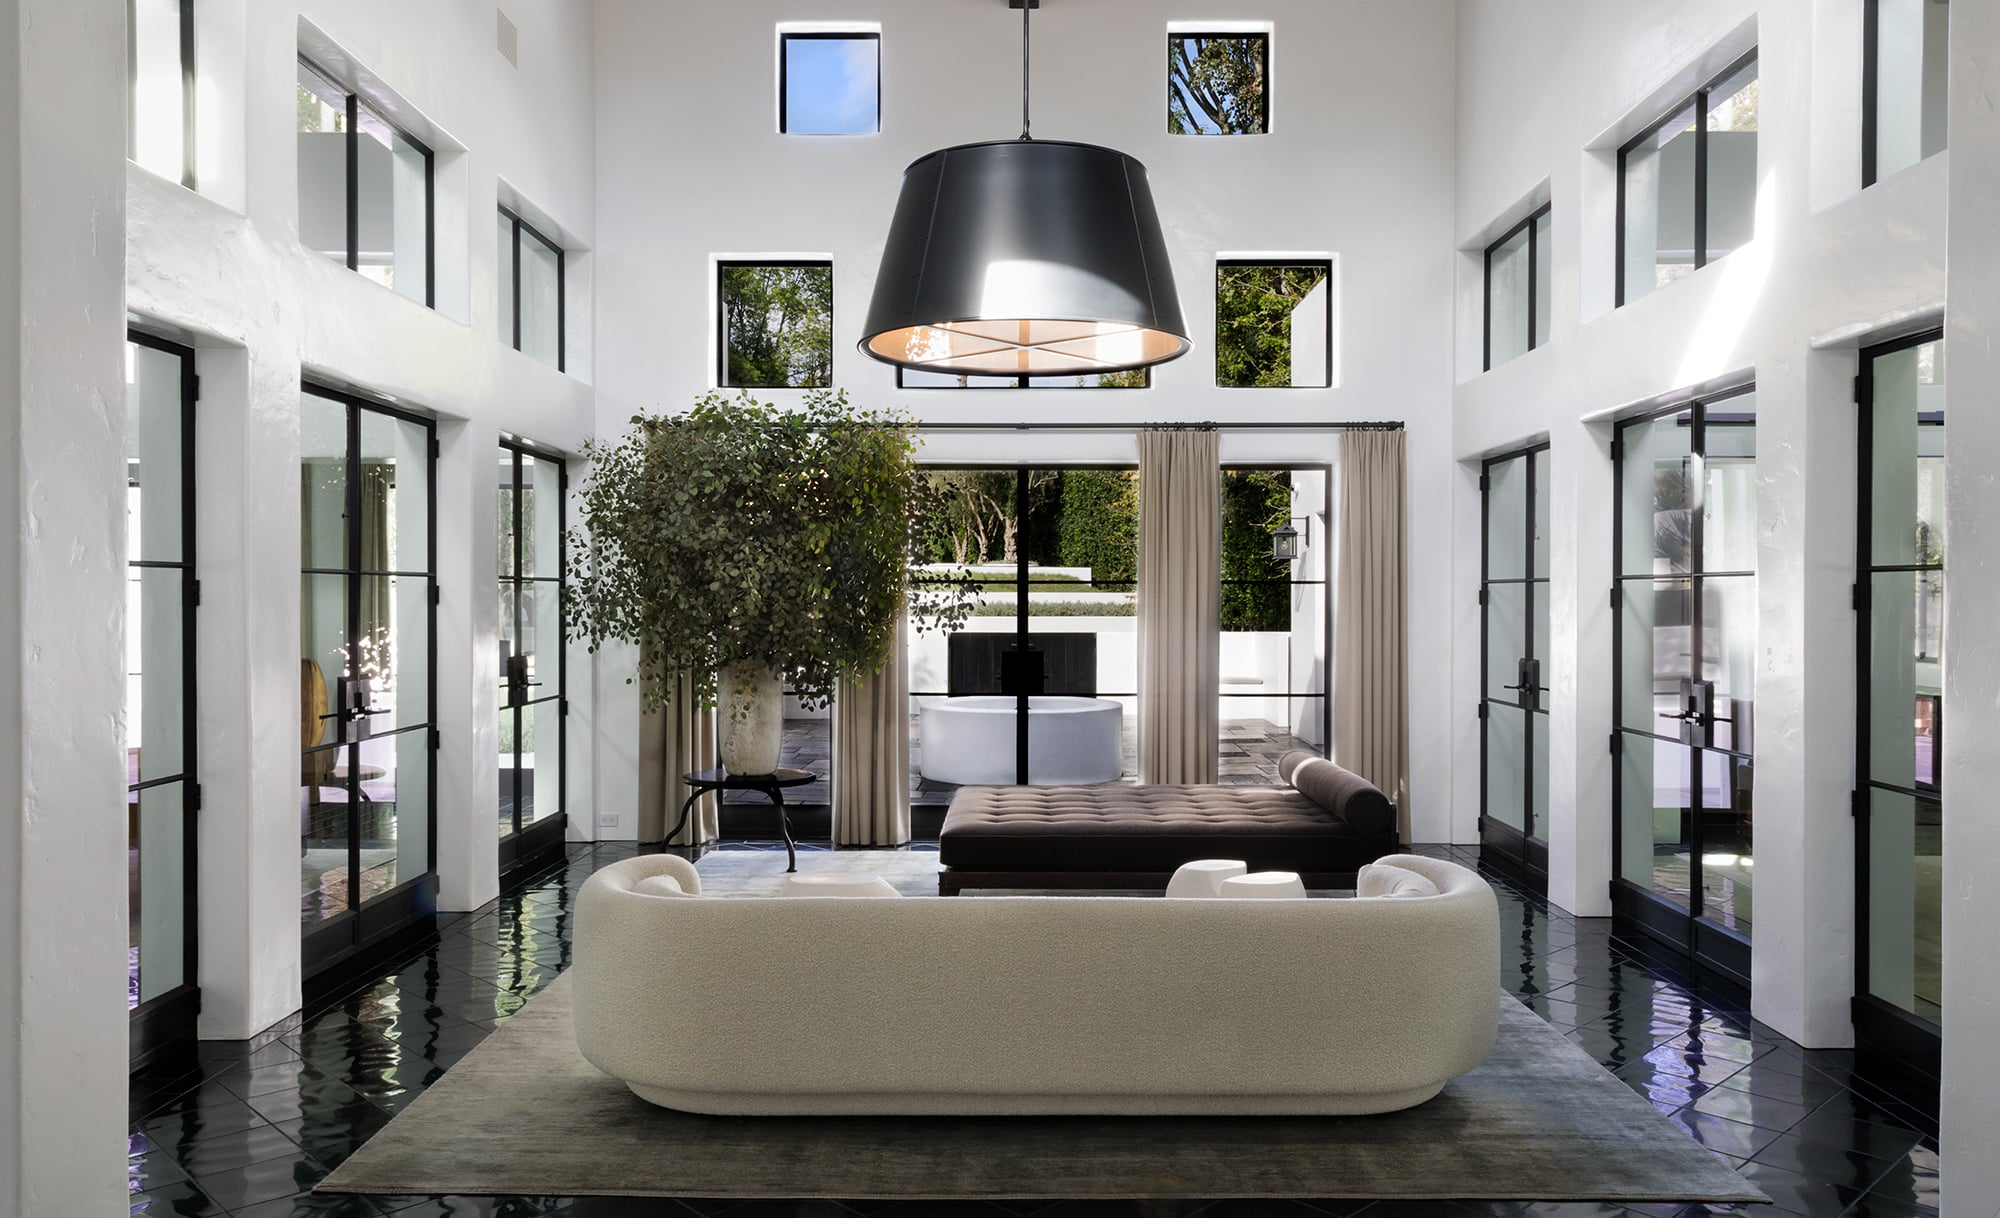 Steel casement windows and doors, bare white walls, black floors, and lamps with black oversize shades in Ryan Murphy's home in Pacific Palisades, designed by Stephen Shadley